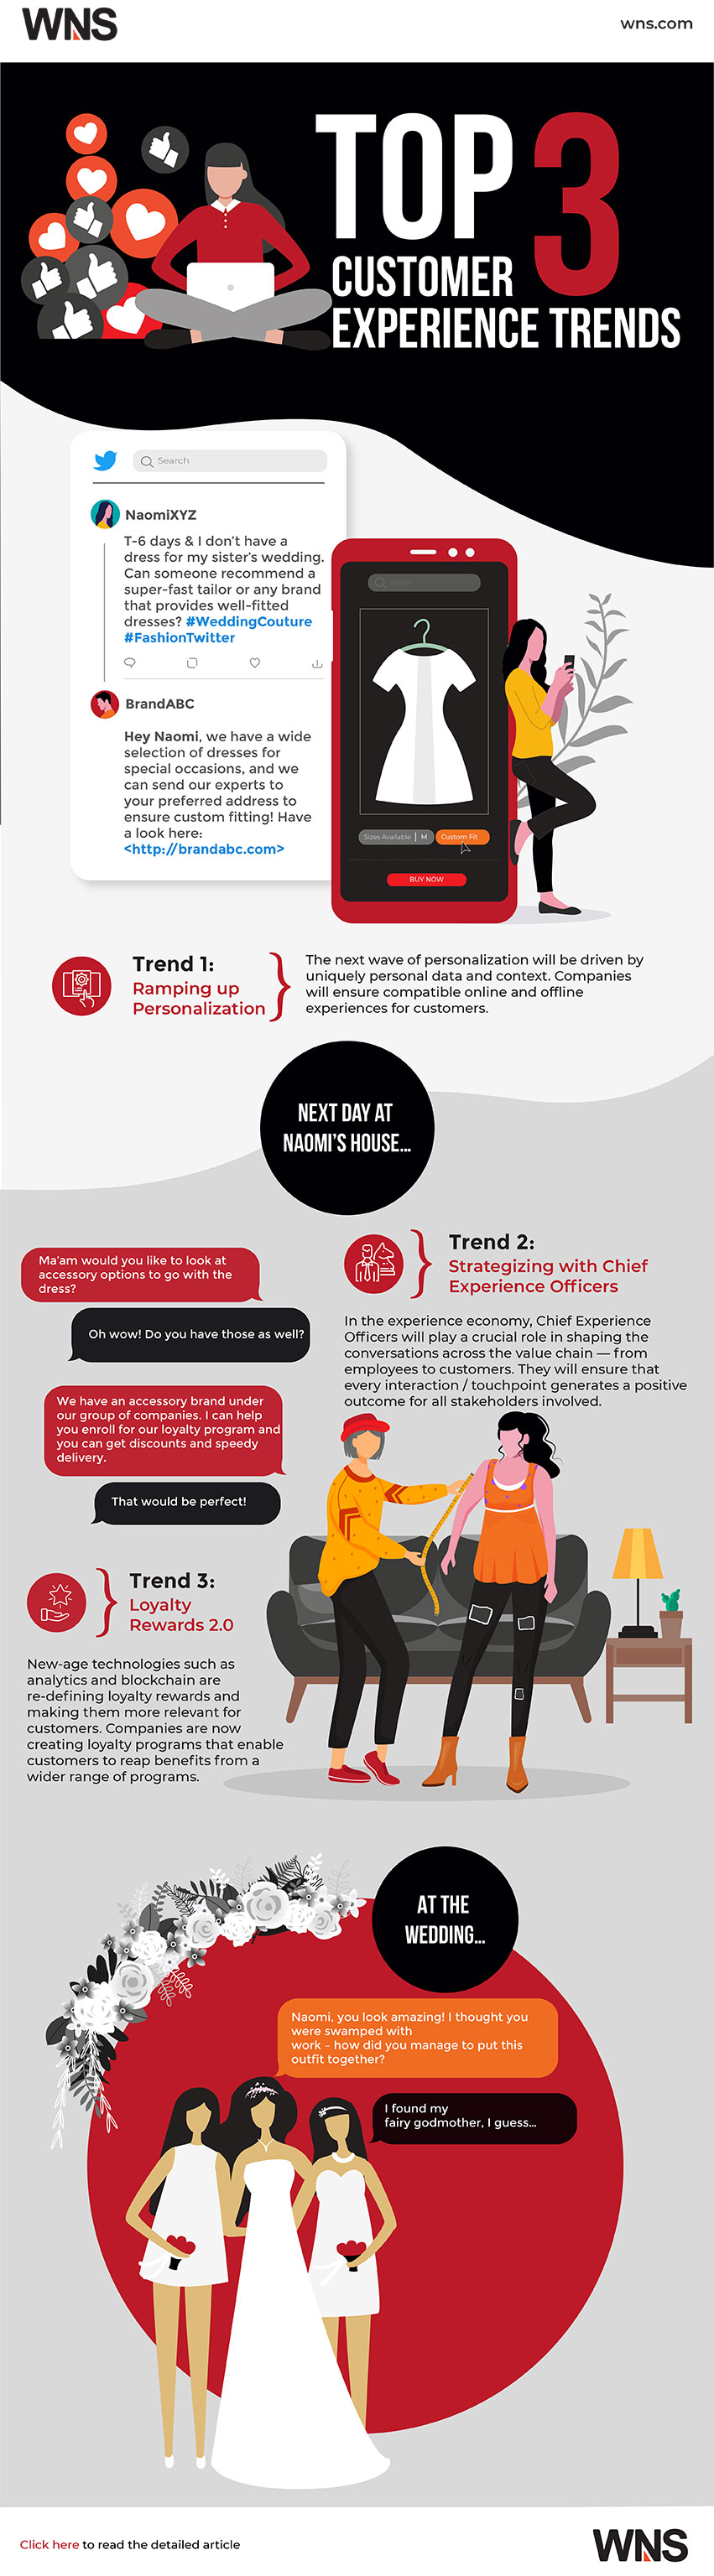 Top 3 Customer Experience Trends Infographic